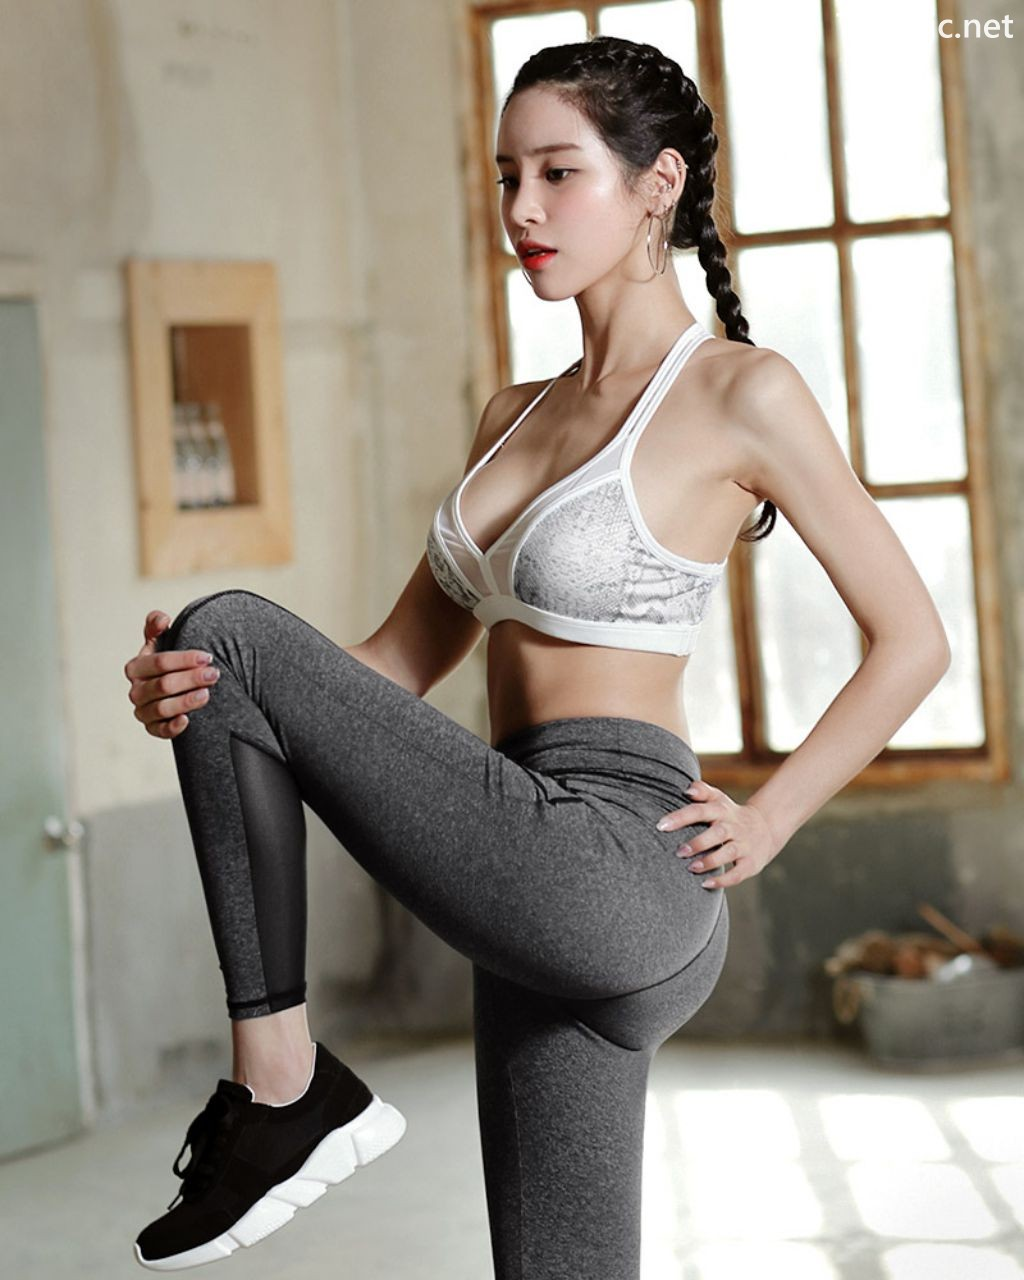 Image-Korean-Fashion-Model-Ju-Woo-Fitness-Set-Collection-TruePic.net- Picture-8